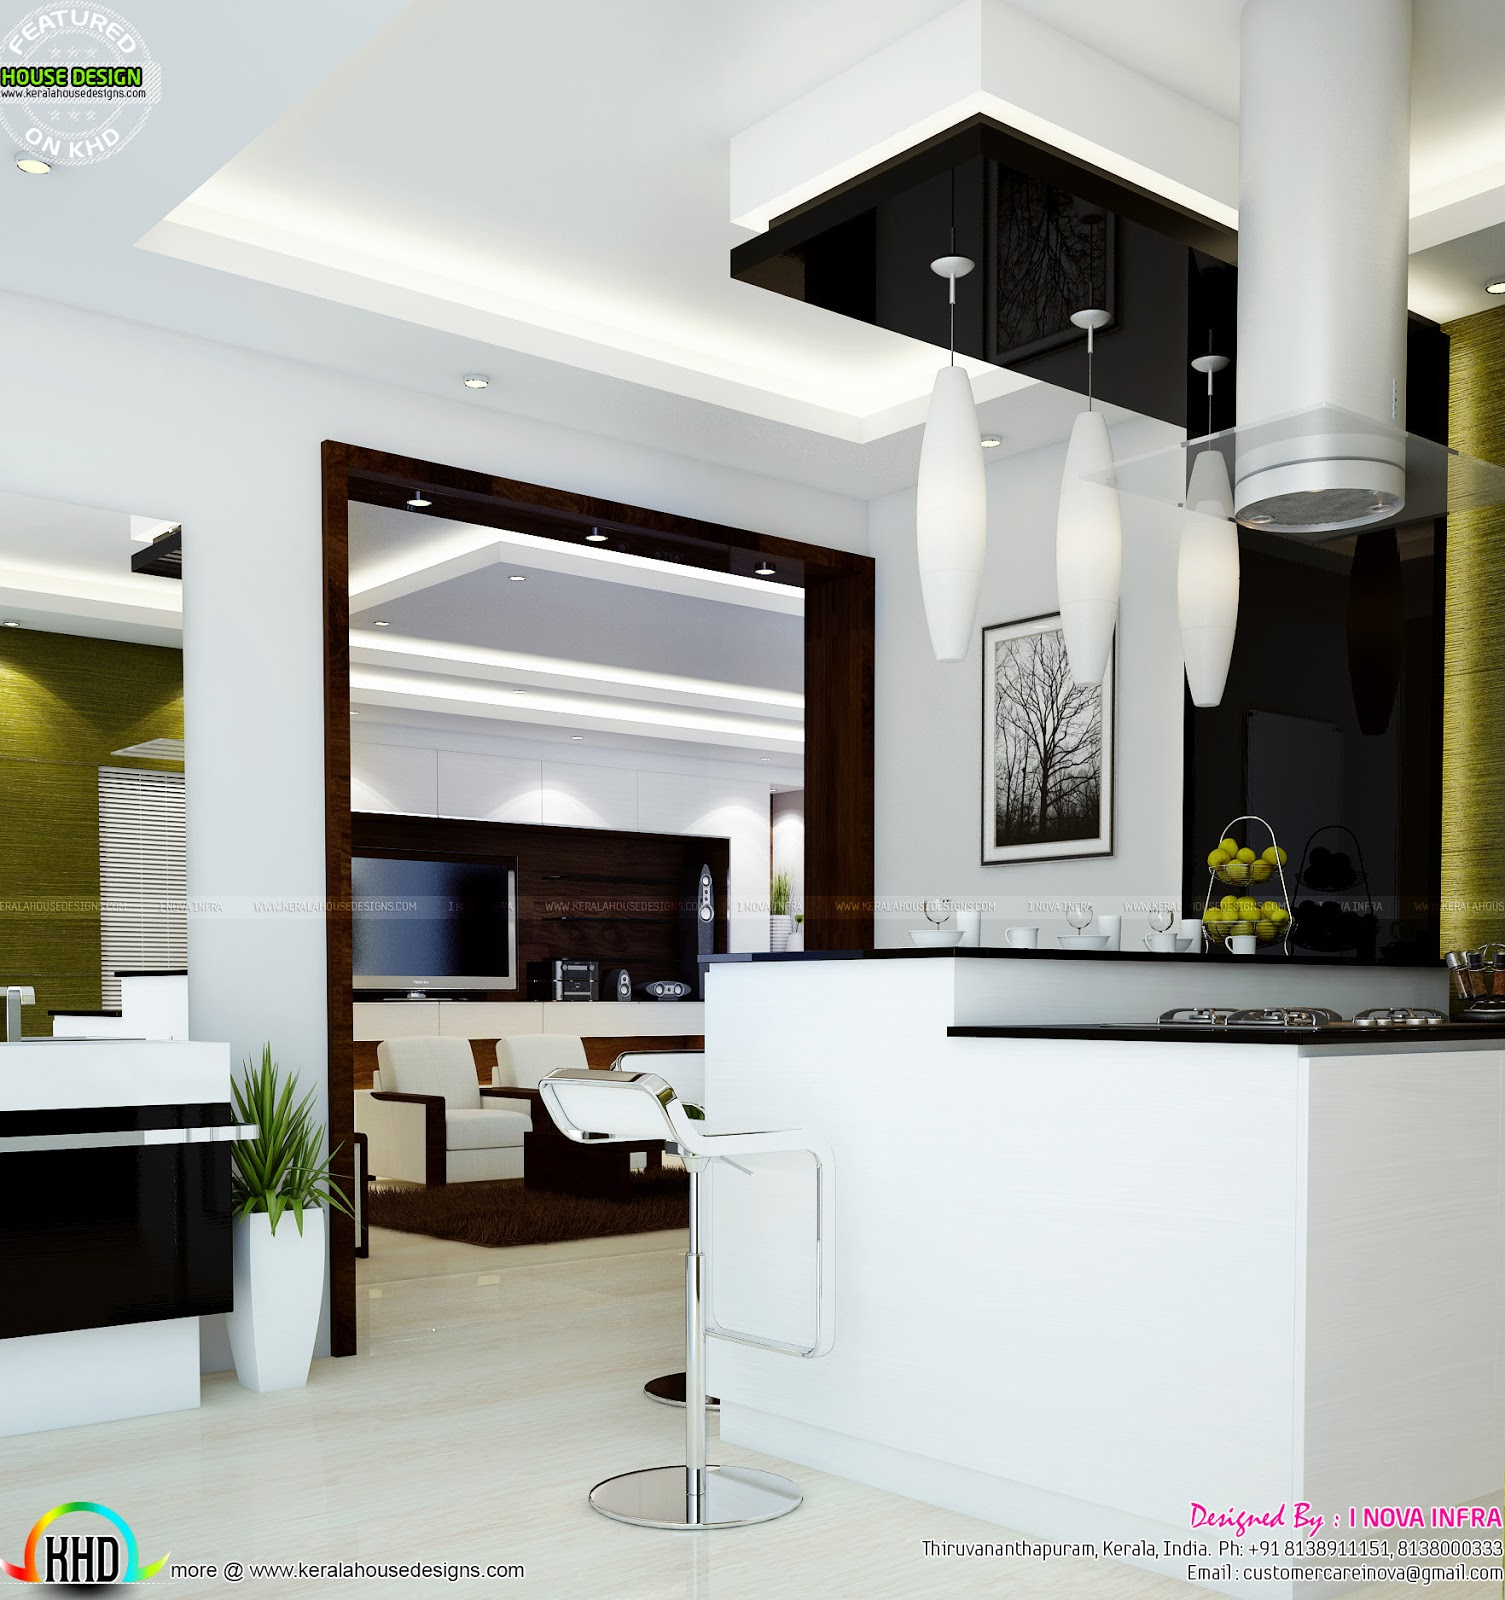 Interior Design Hall And Kitchen: Home Interior Designs By I Nova Infra